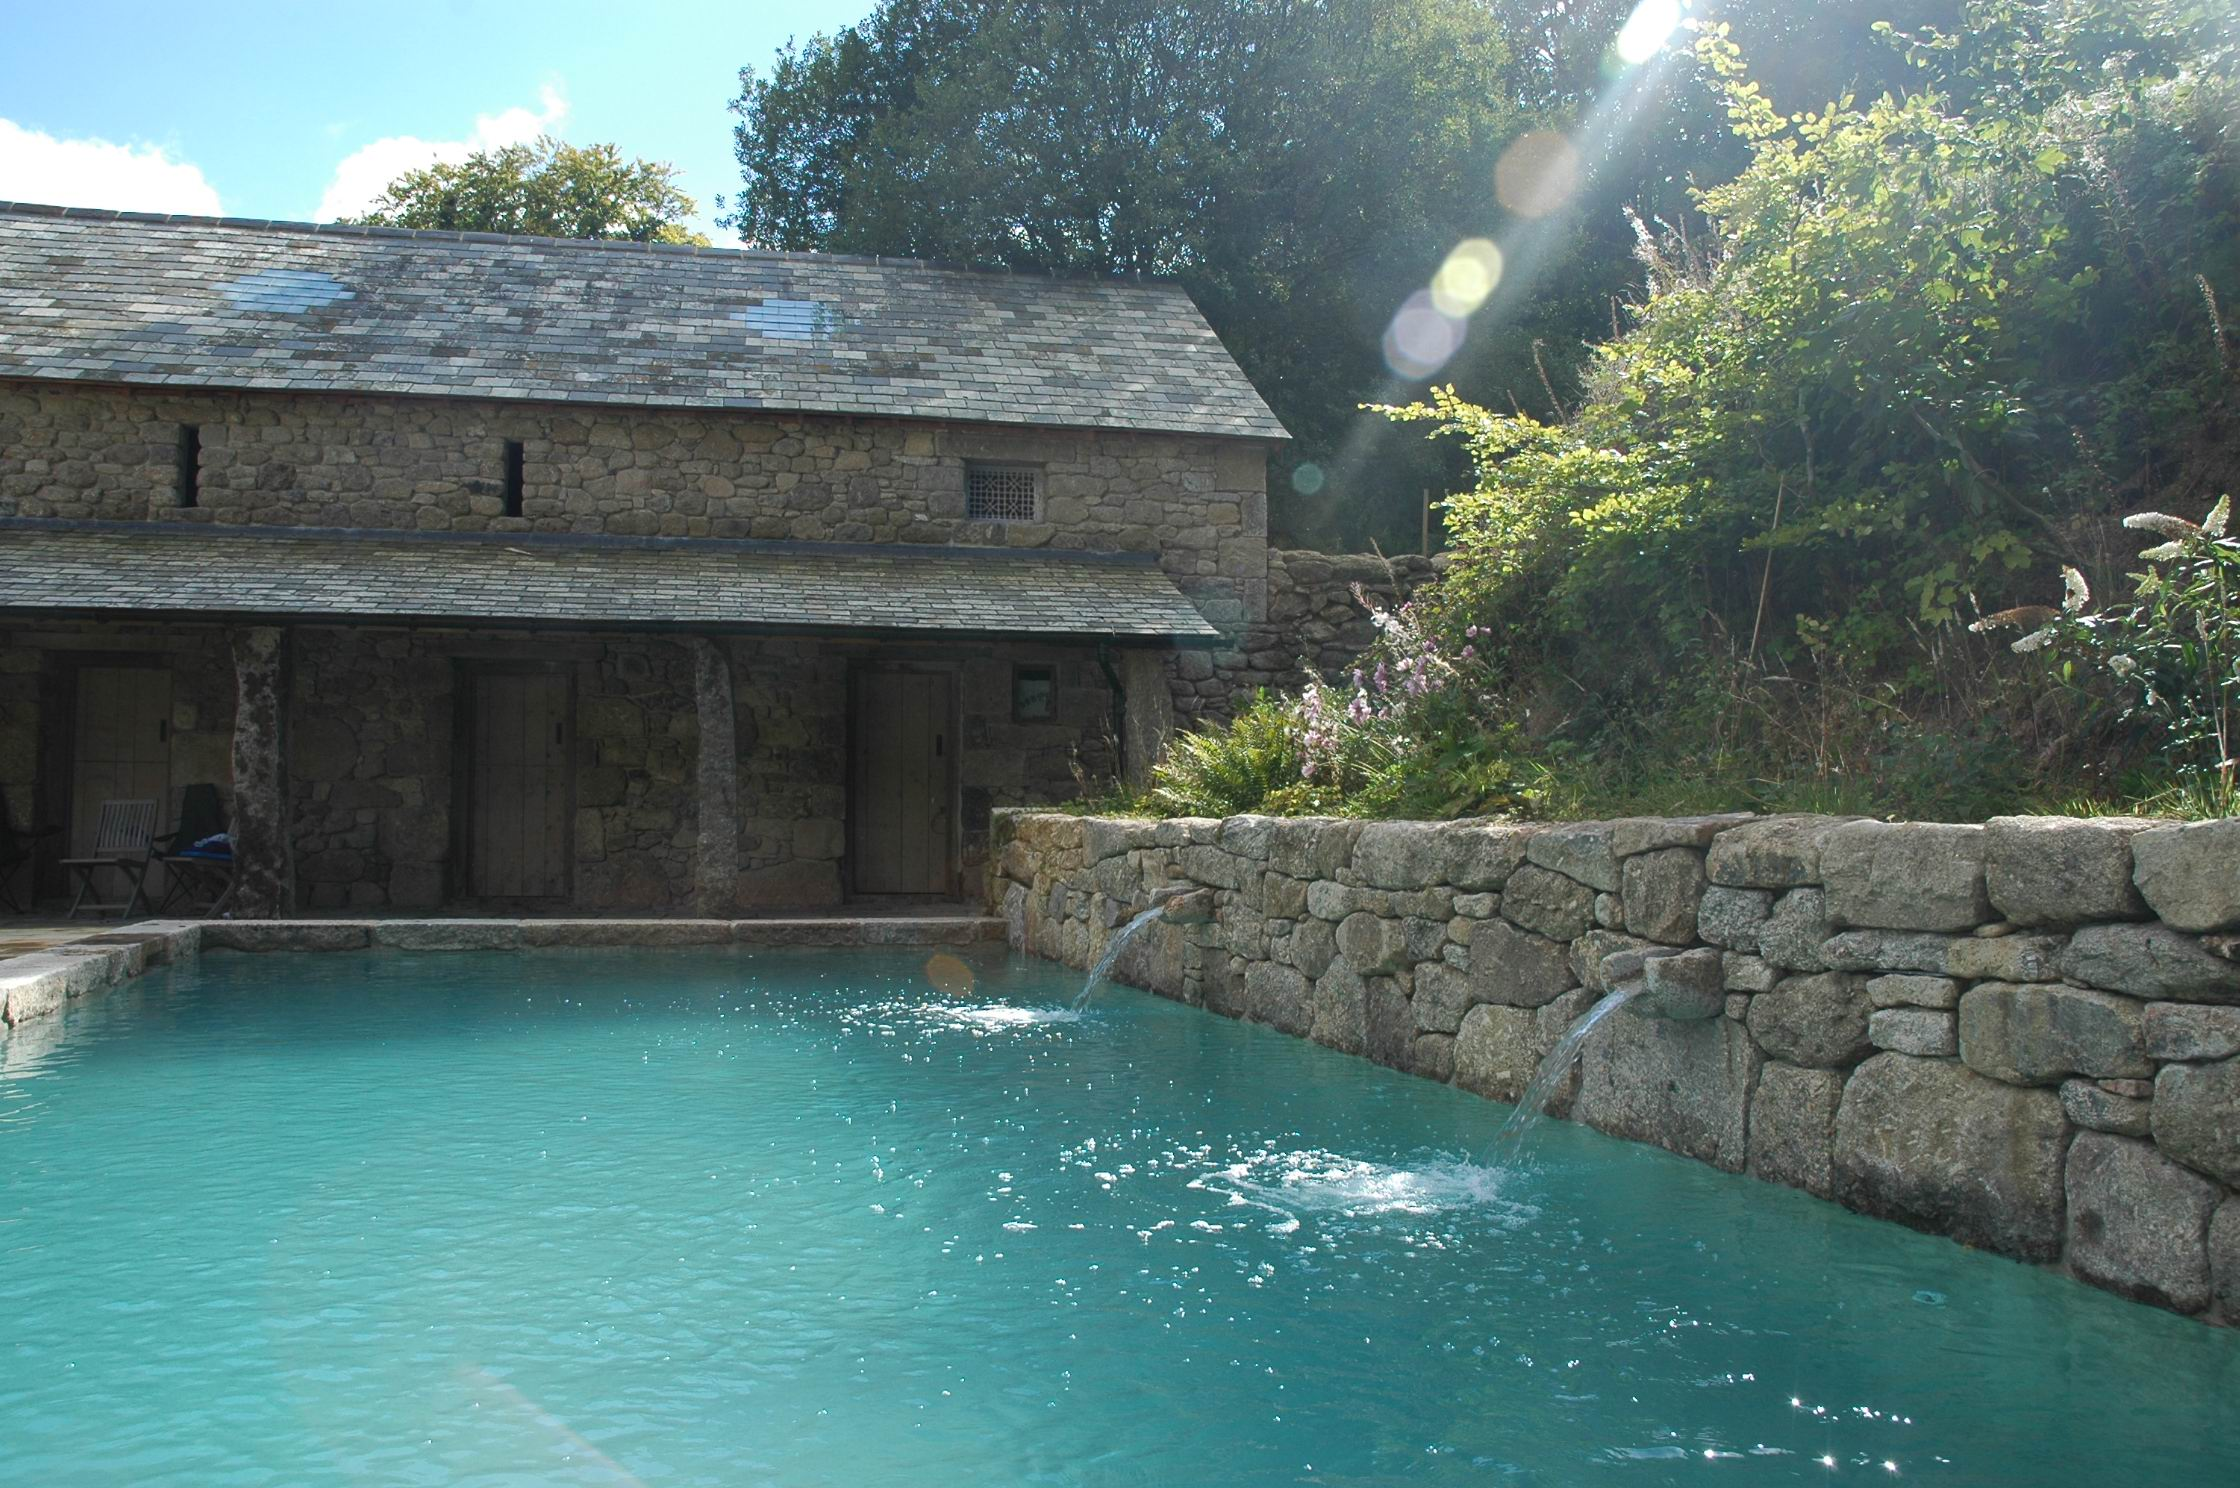 Pool and Barn Sun light